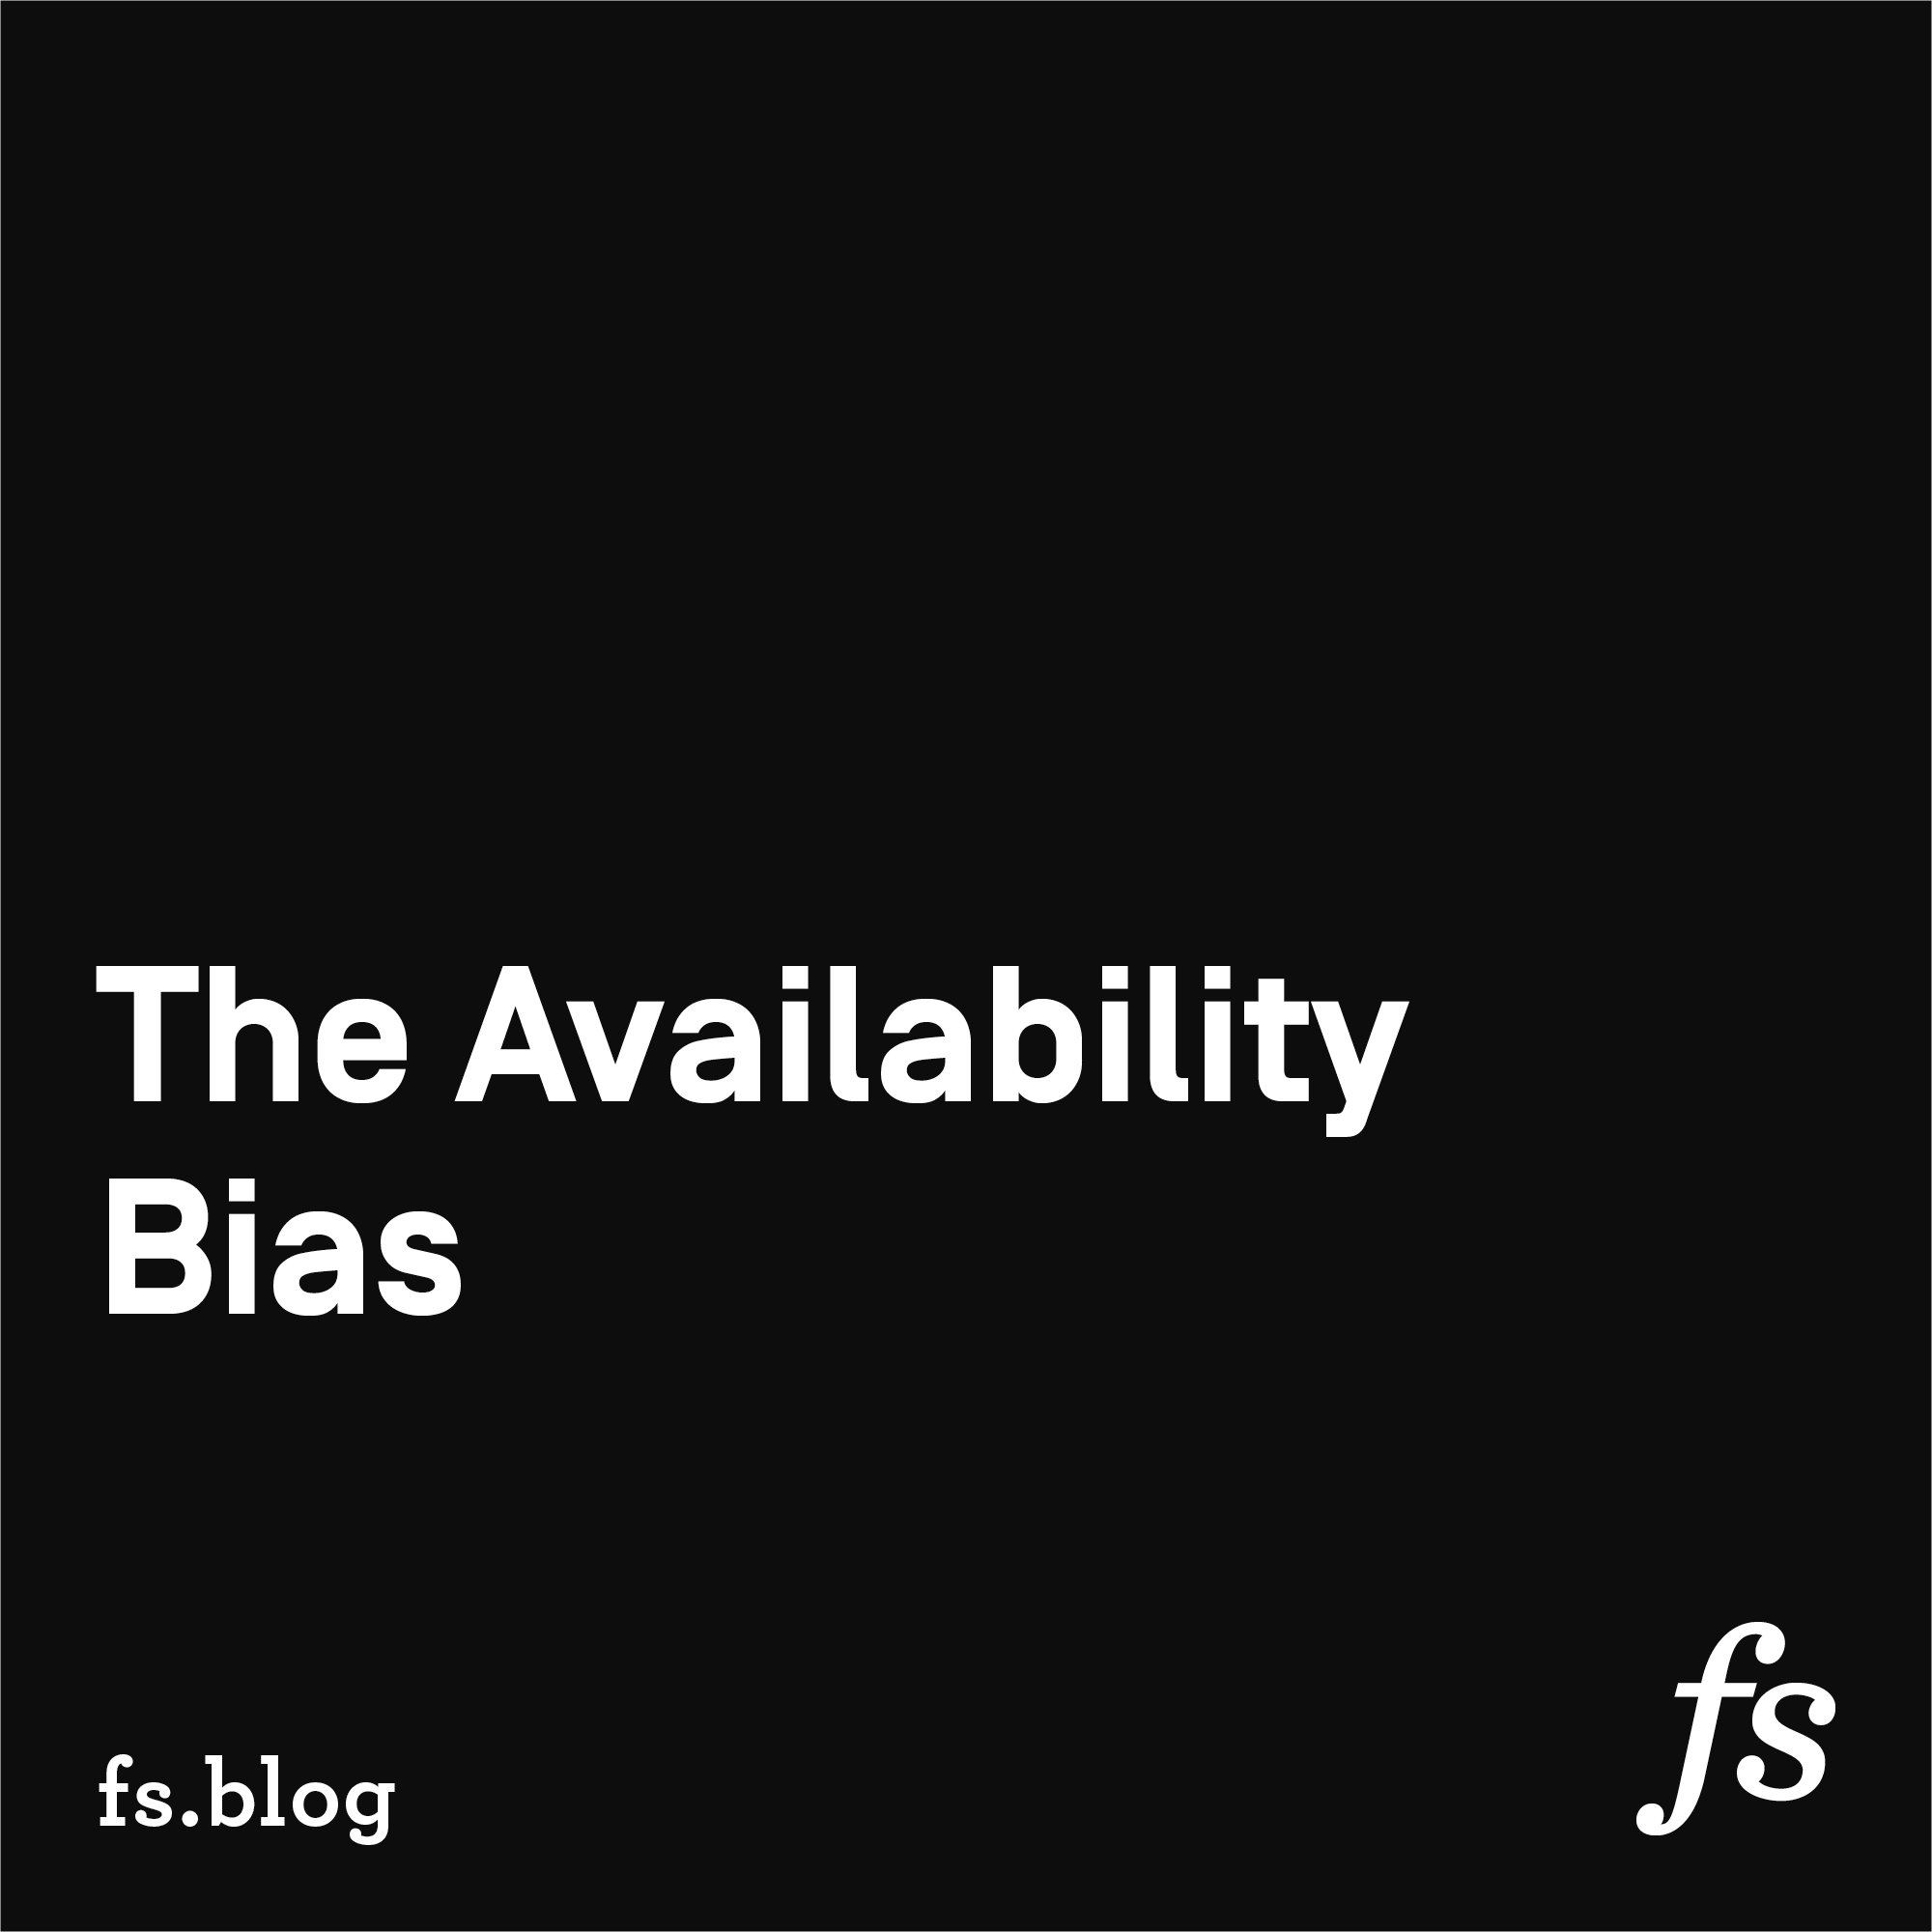 The Availability Bias: How to Overcome a Common Cognitive Distortion